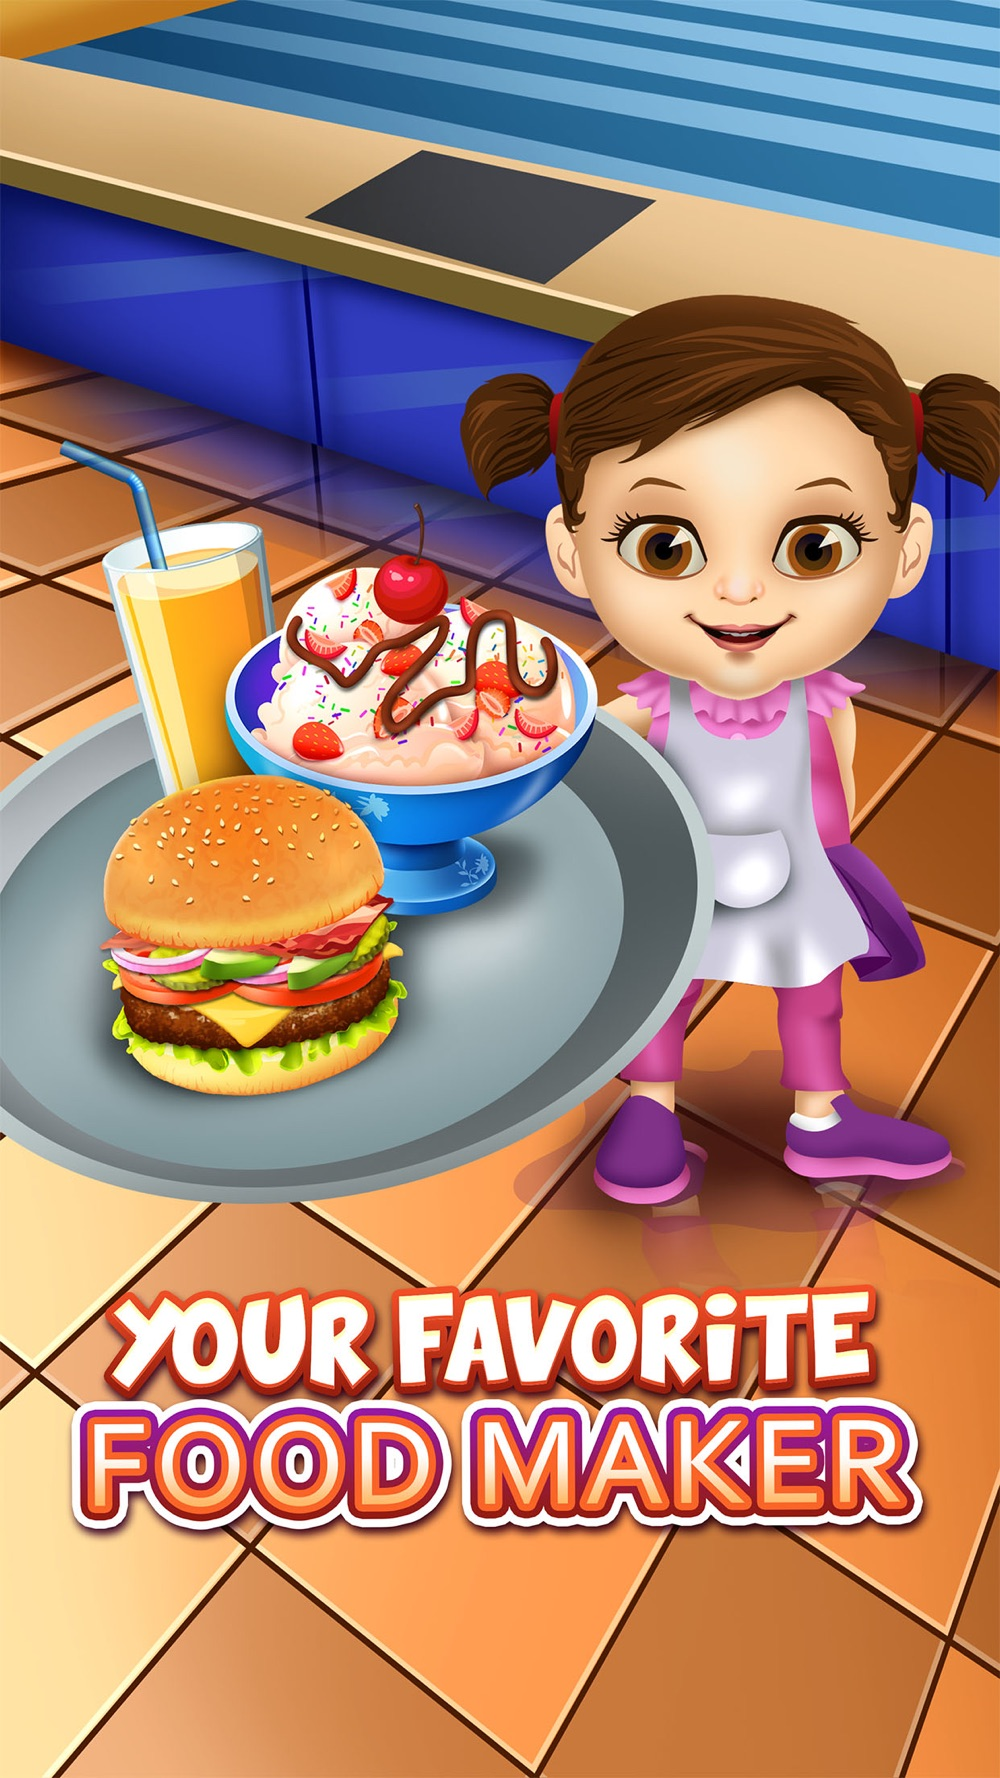 Food Making Kids Games & Maker Cooking Cheat Codes